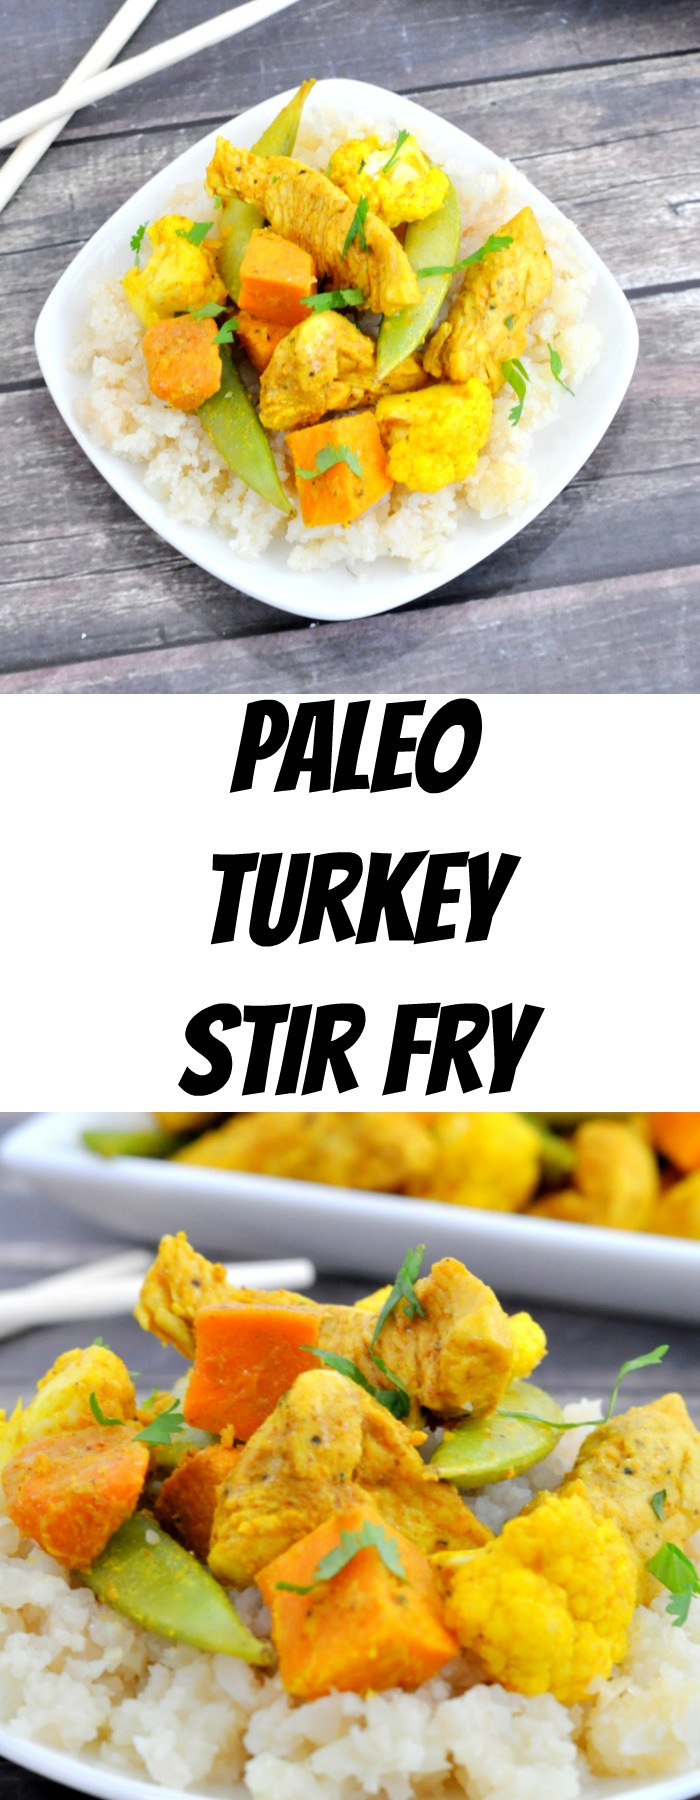 Paleo Turkey Stir Fry